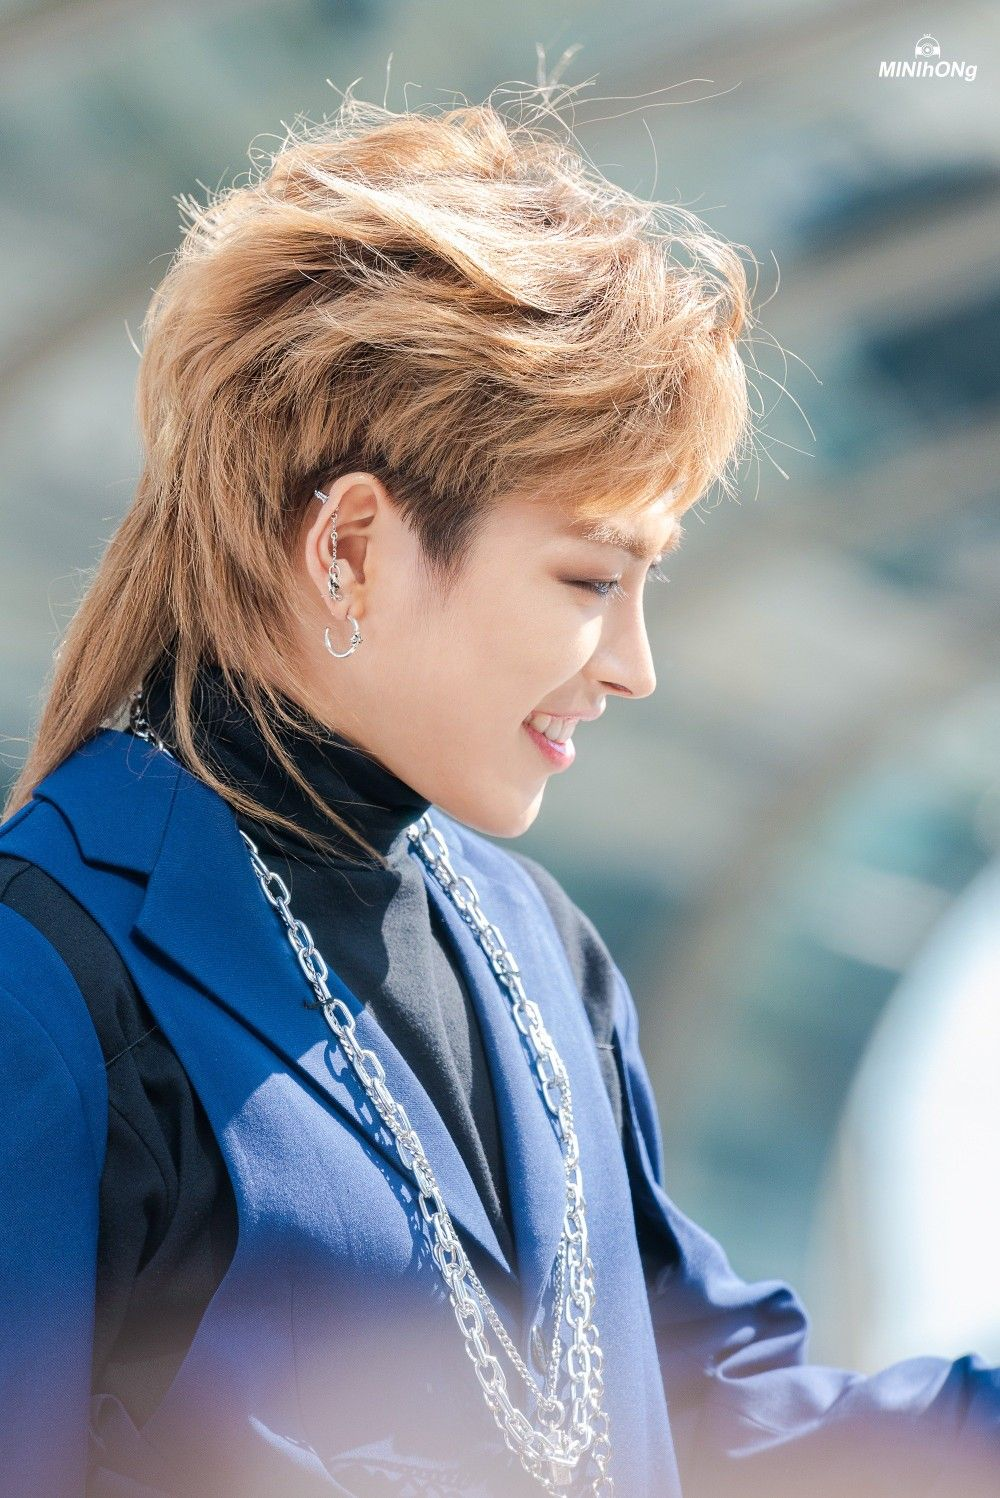 Pin by 𝙰_𝙰𝚃𝙸𝙽𝚈 on ATEEZ | Kim hongjoong, Mullet hairstyle ...